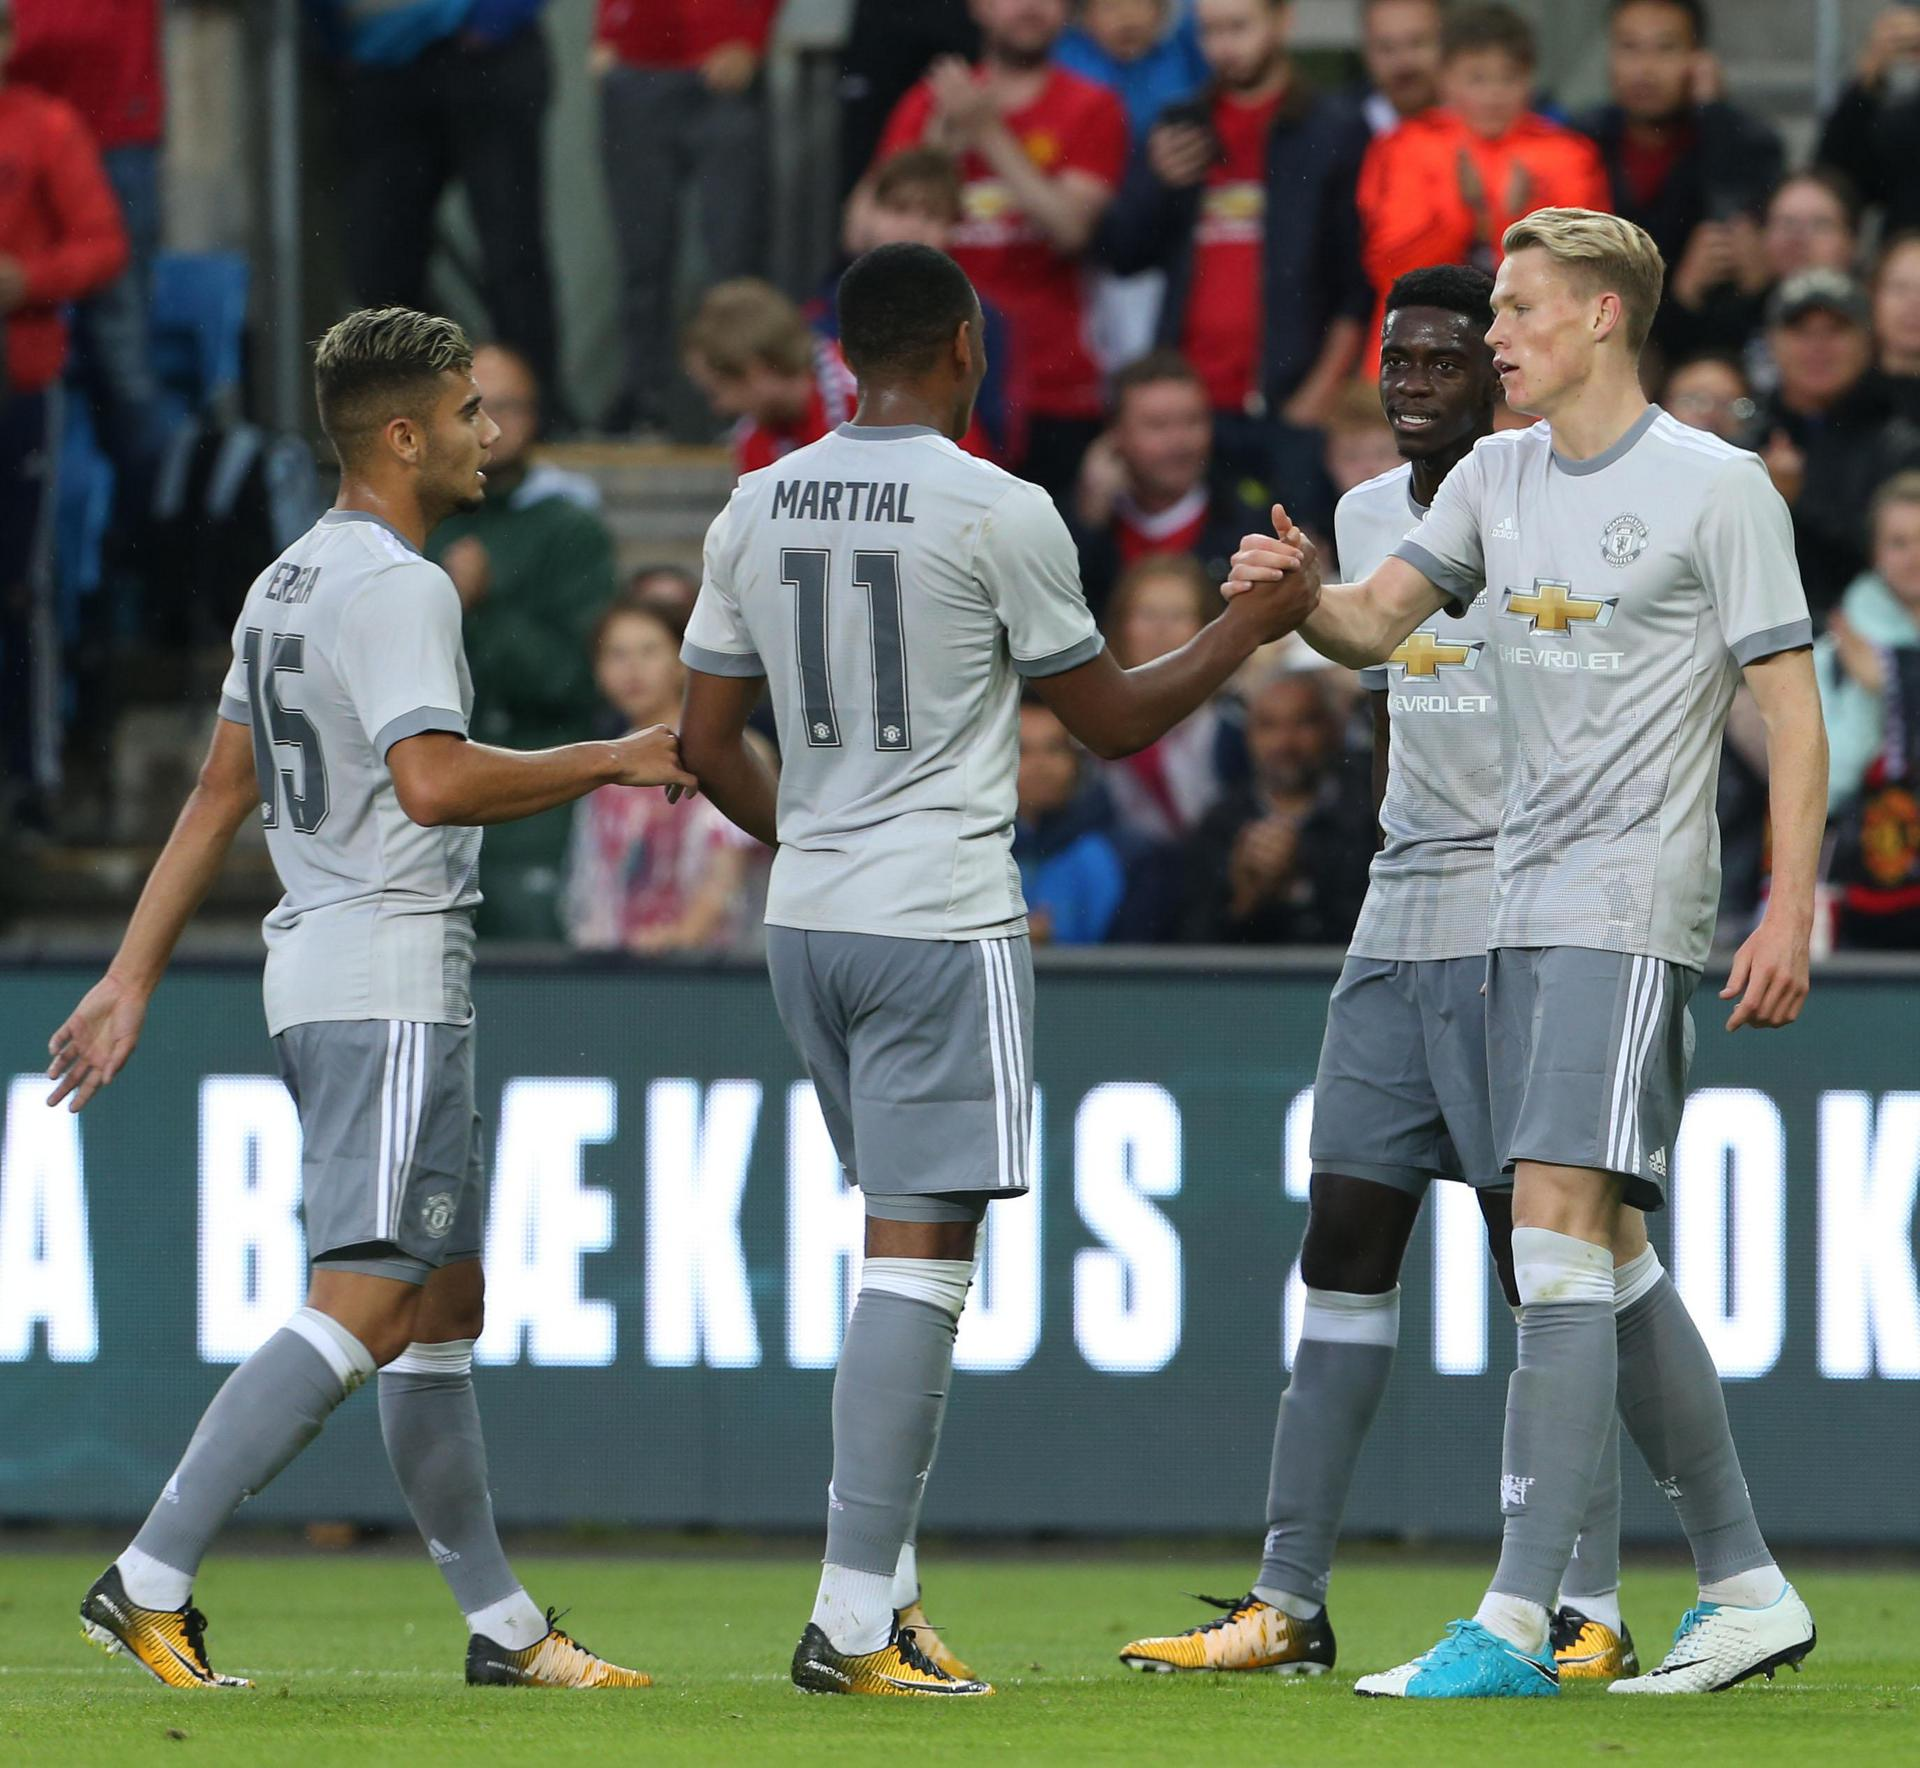 Scott McTominay celebrates his goal with his Manchester United team-mates